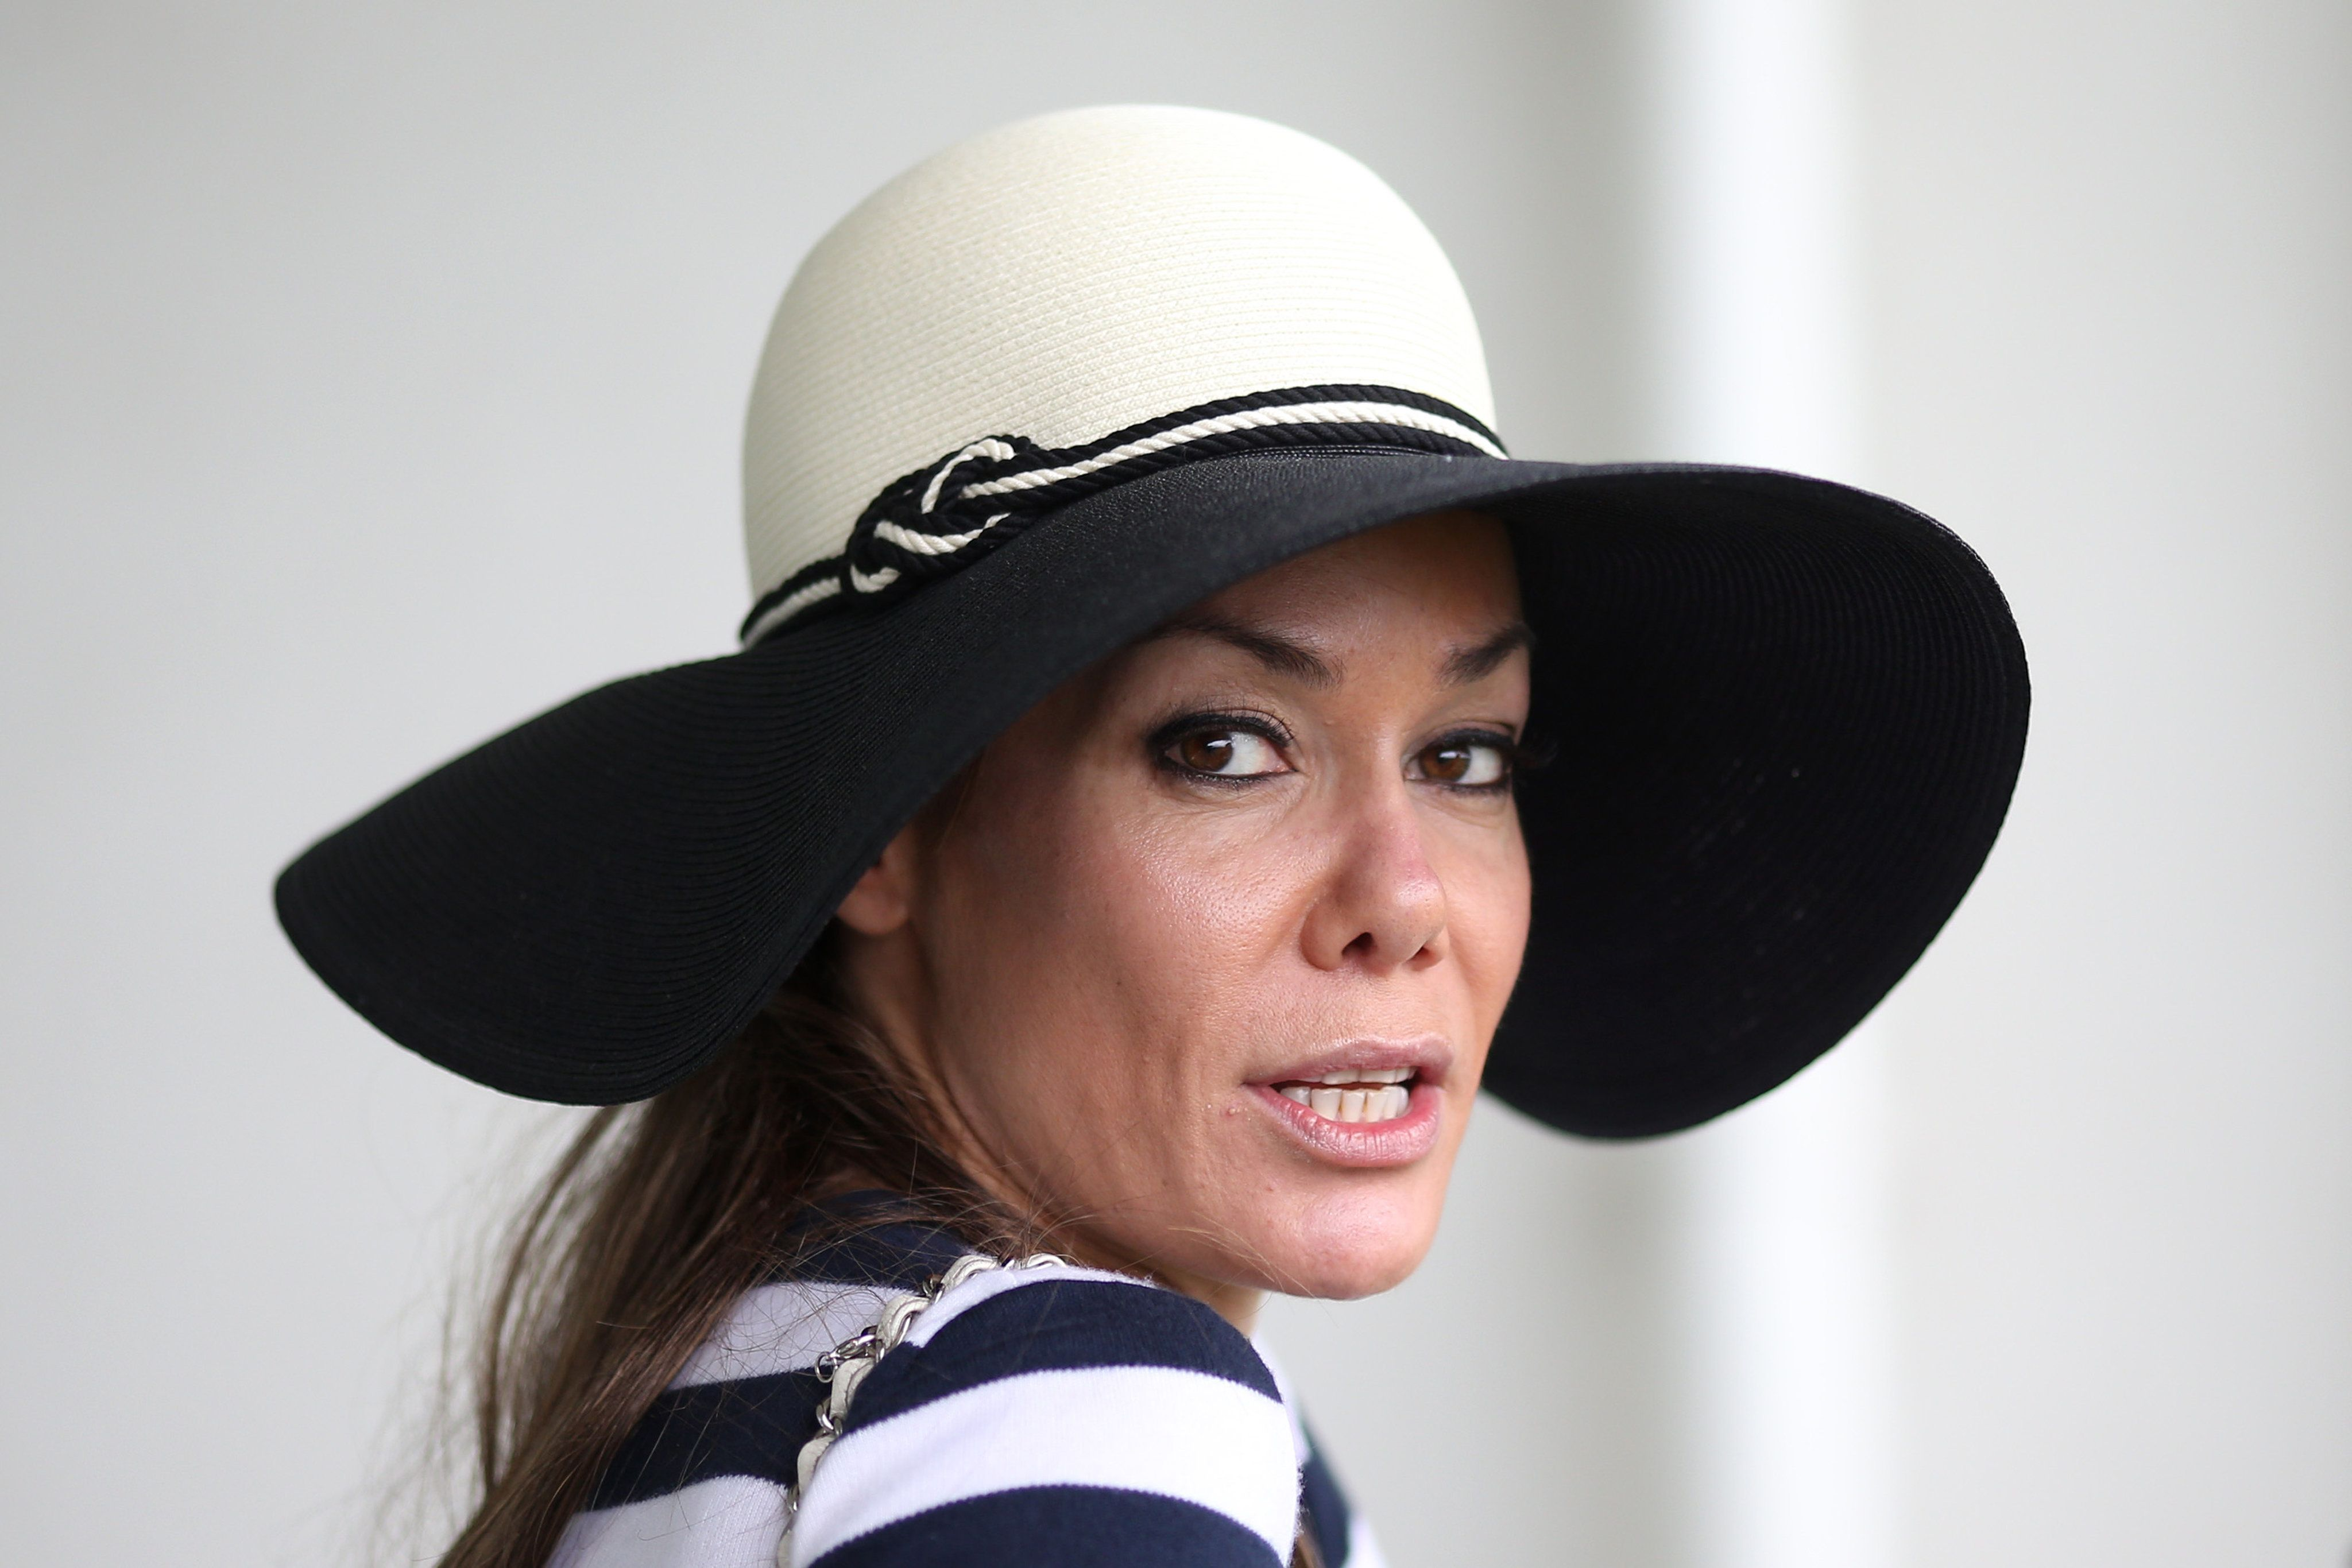 Tara Palmer-Tomkinson Reveals She Has Been Living With A Brain Tumour For A